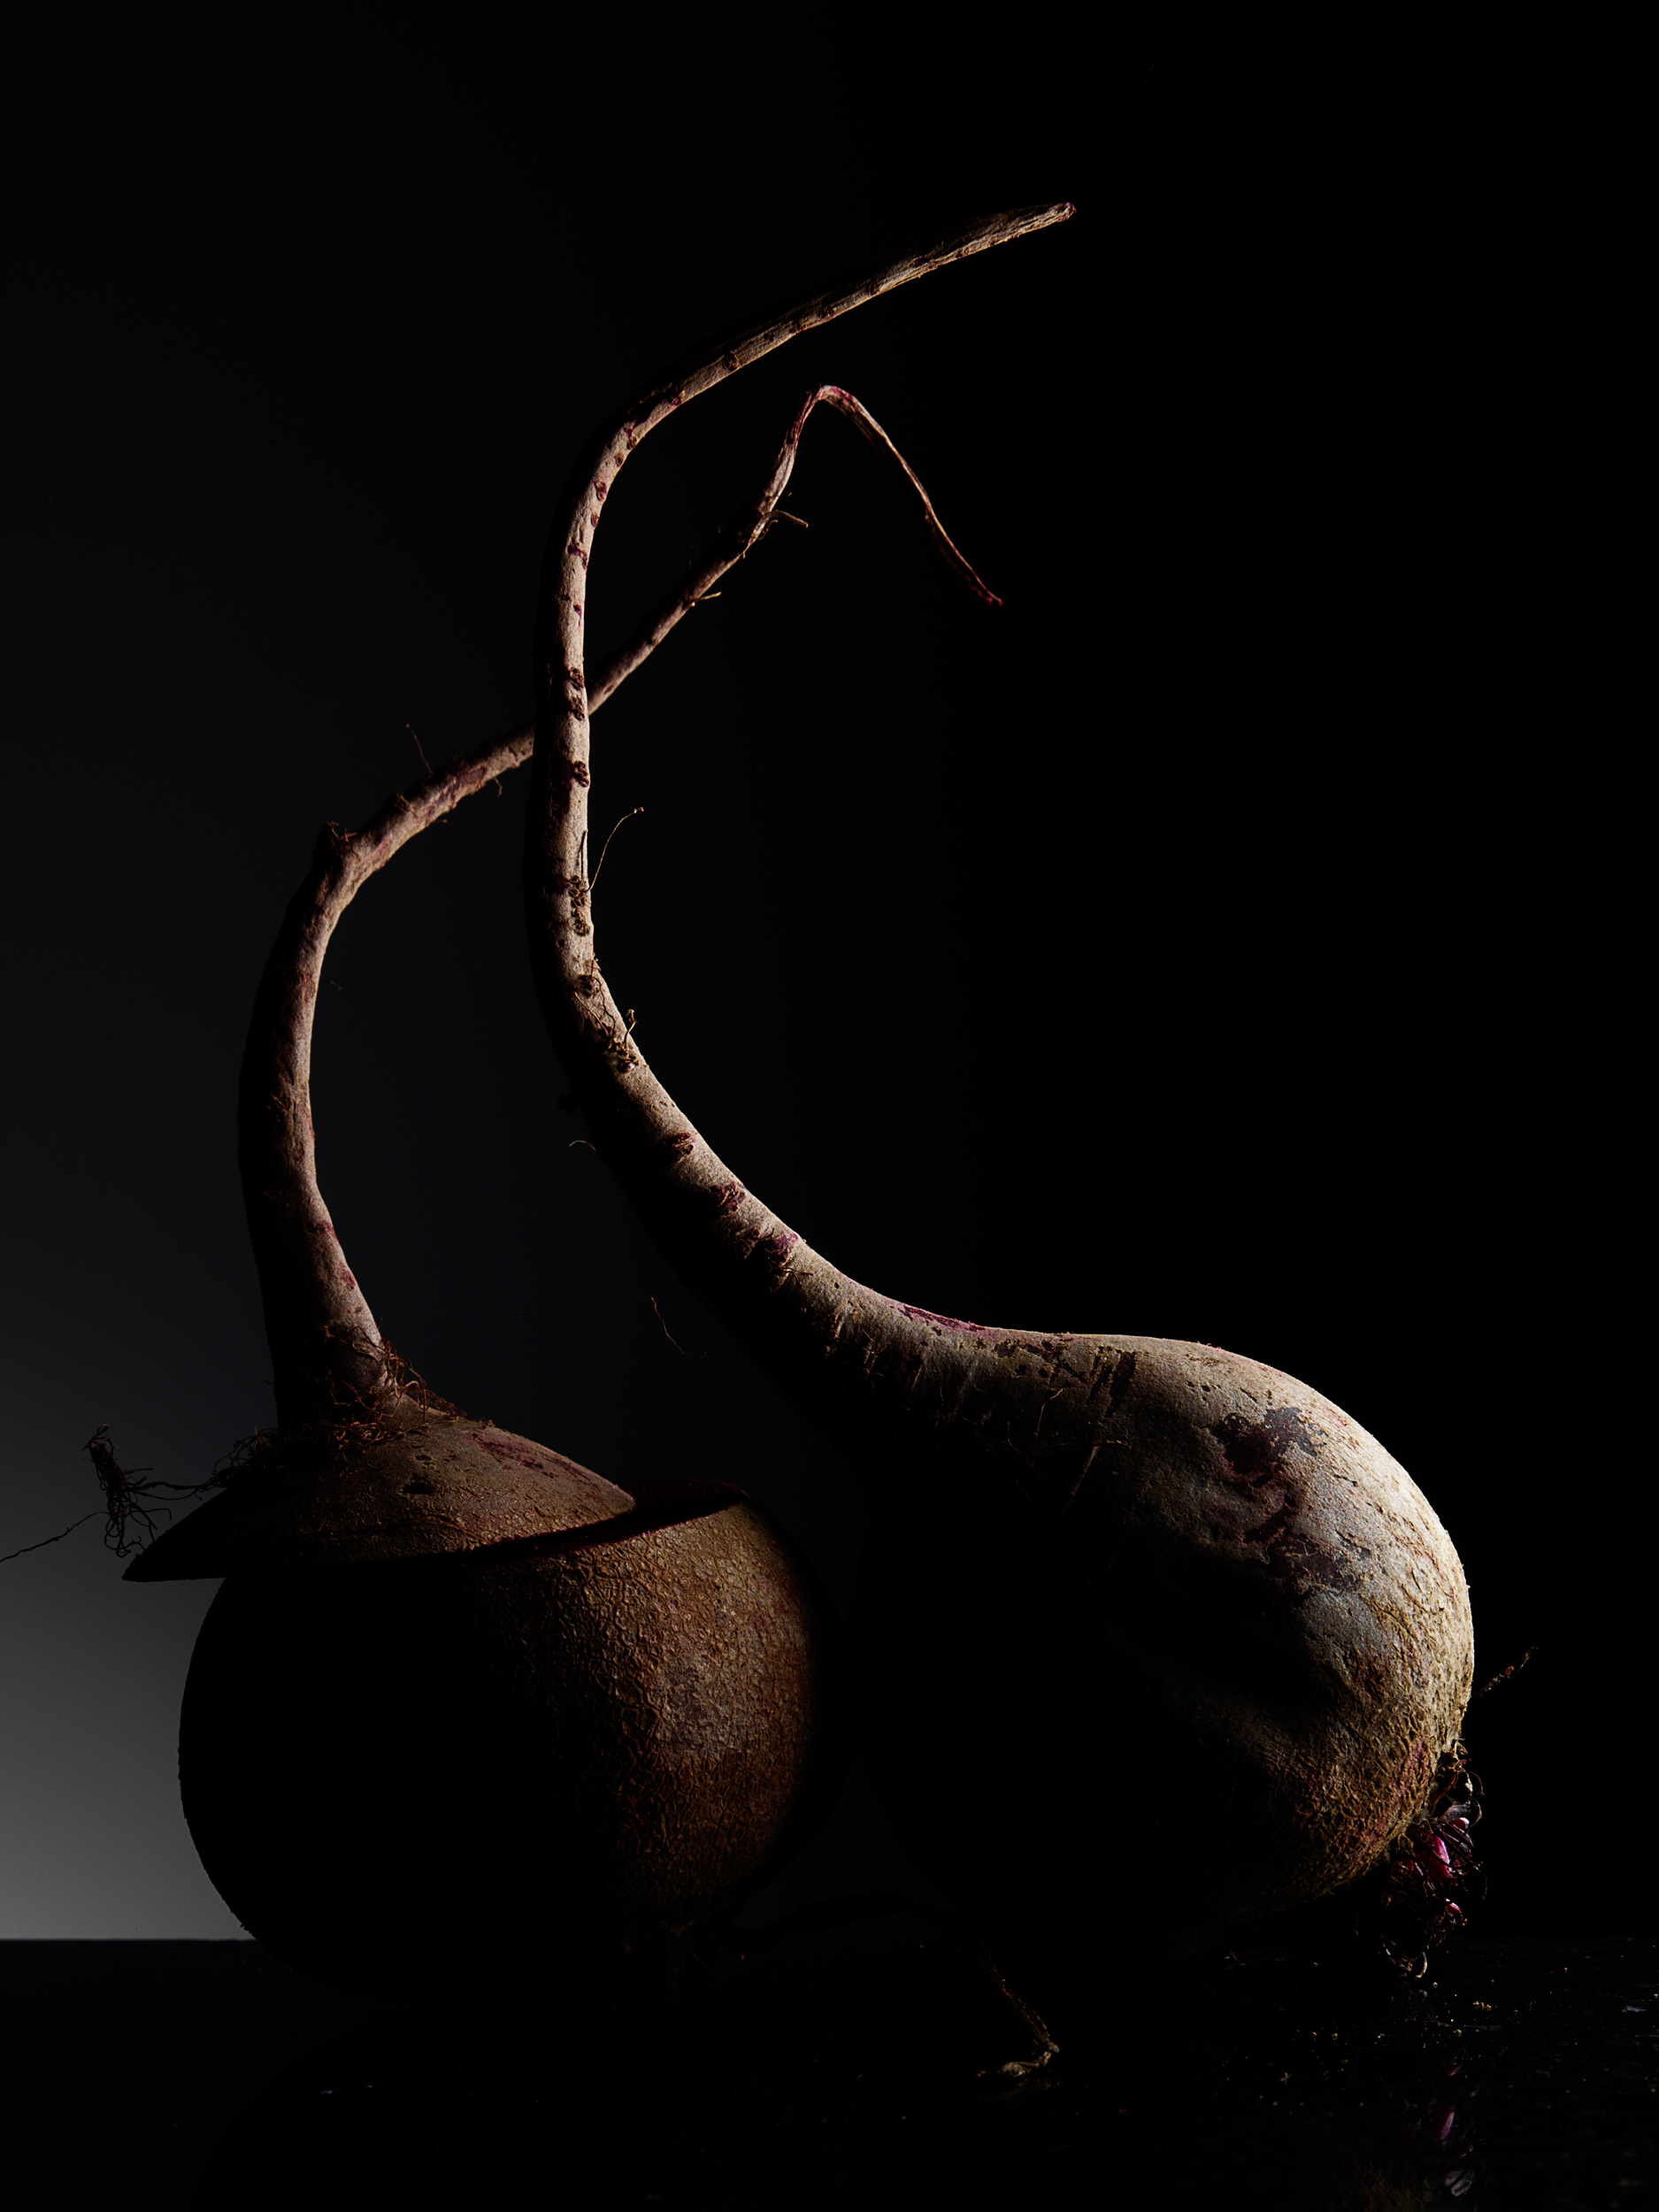 beets_022_RS.jpg